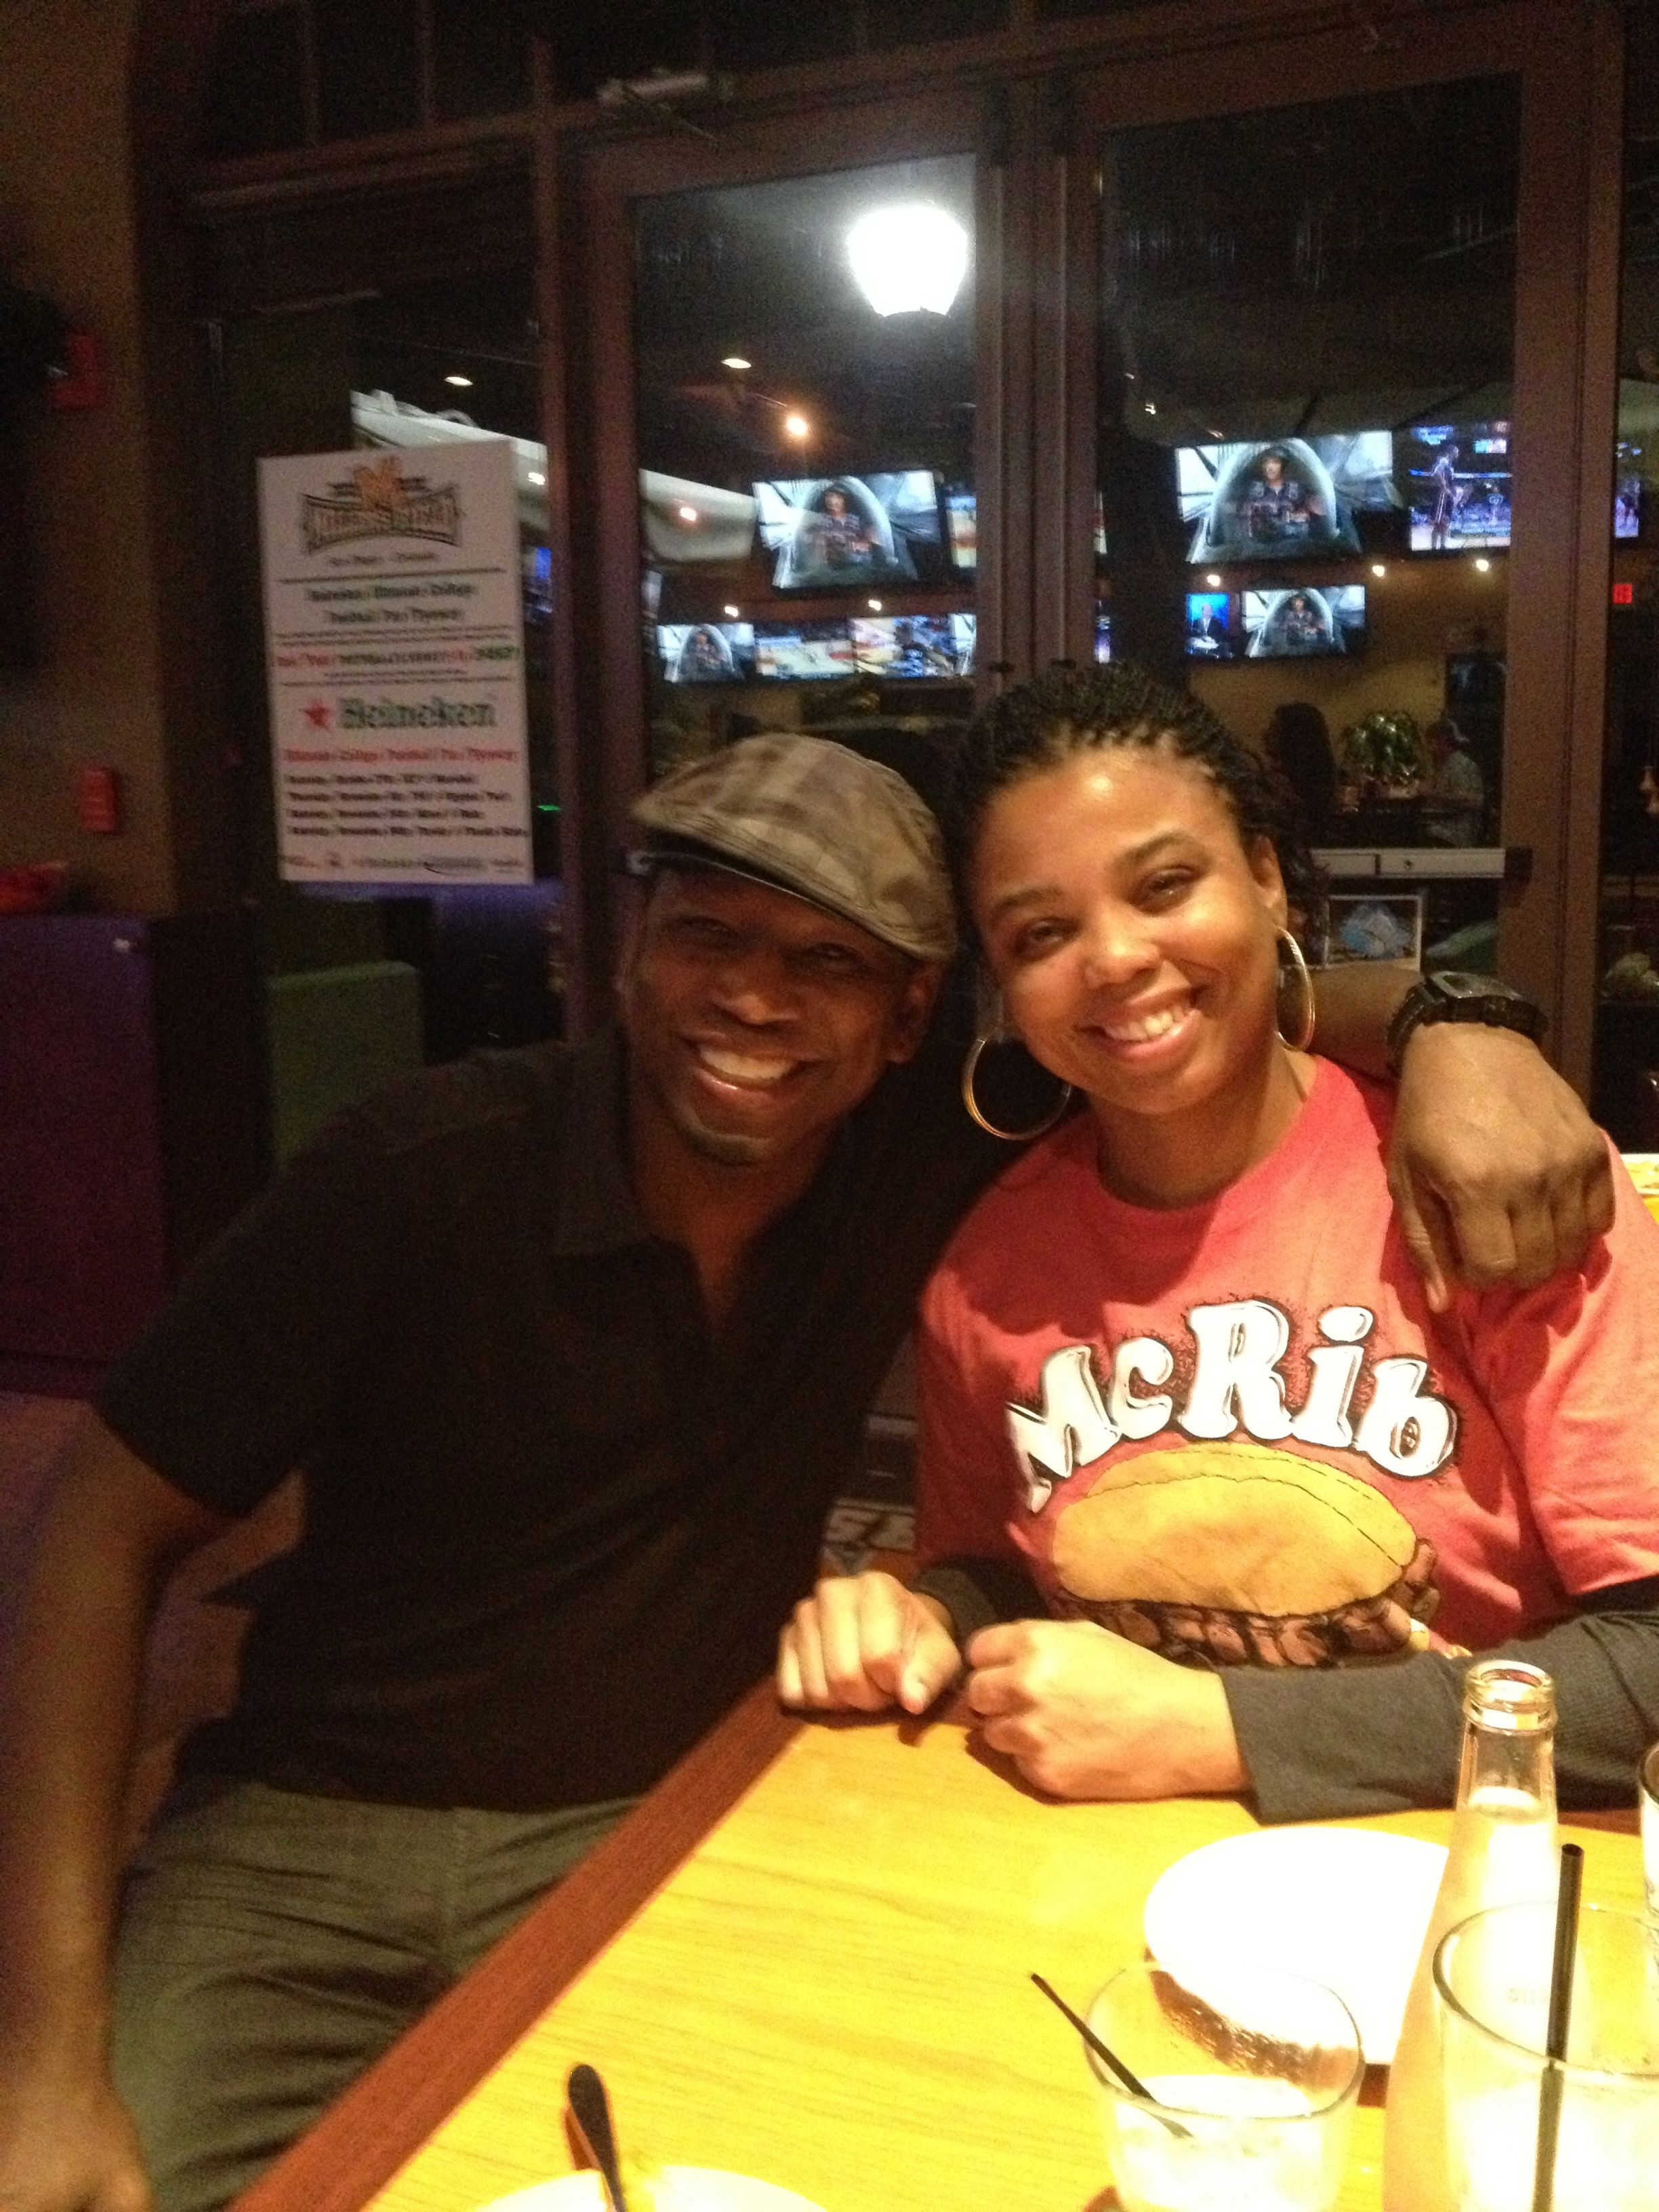 Mutual Fans of each others work. Sports Journalist & ESPN's Numbers Never Lie Jemele Hill chillin' at Millers Post  in Orlando before I invade THE IMPROV COMEDY CLUB'S stage. 2012